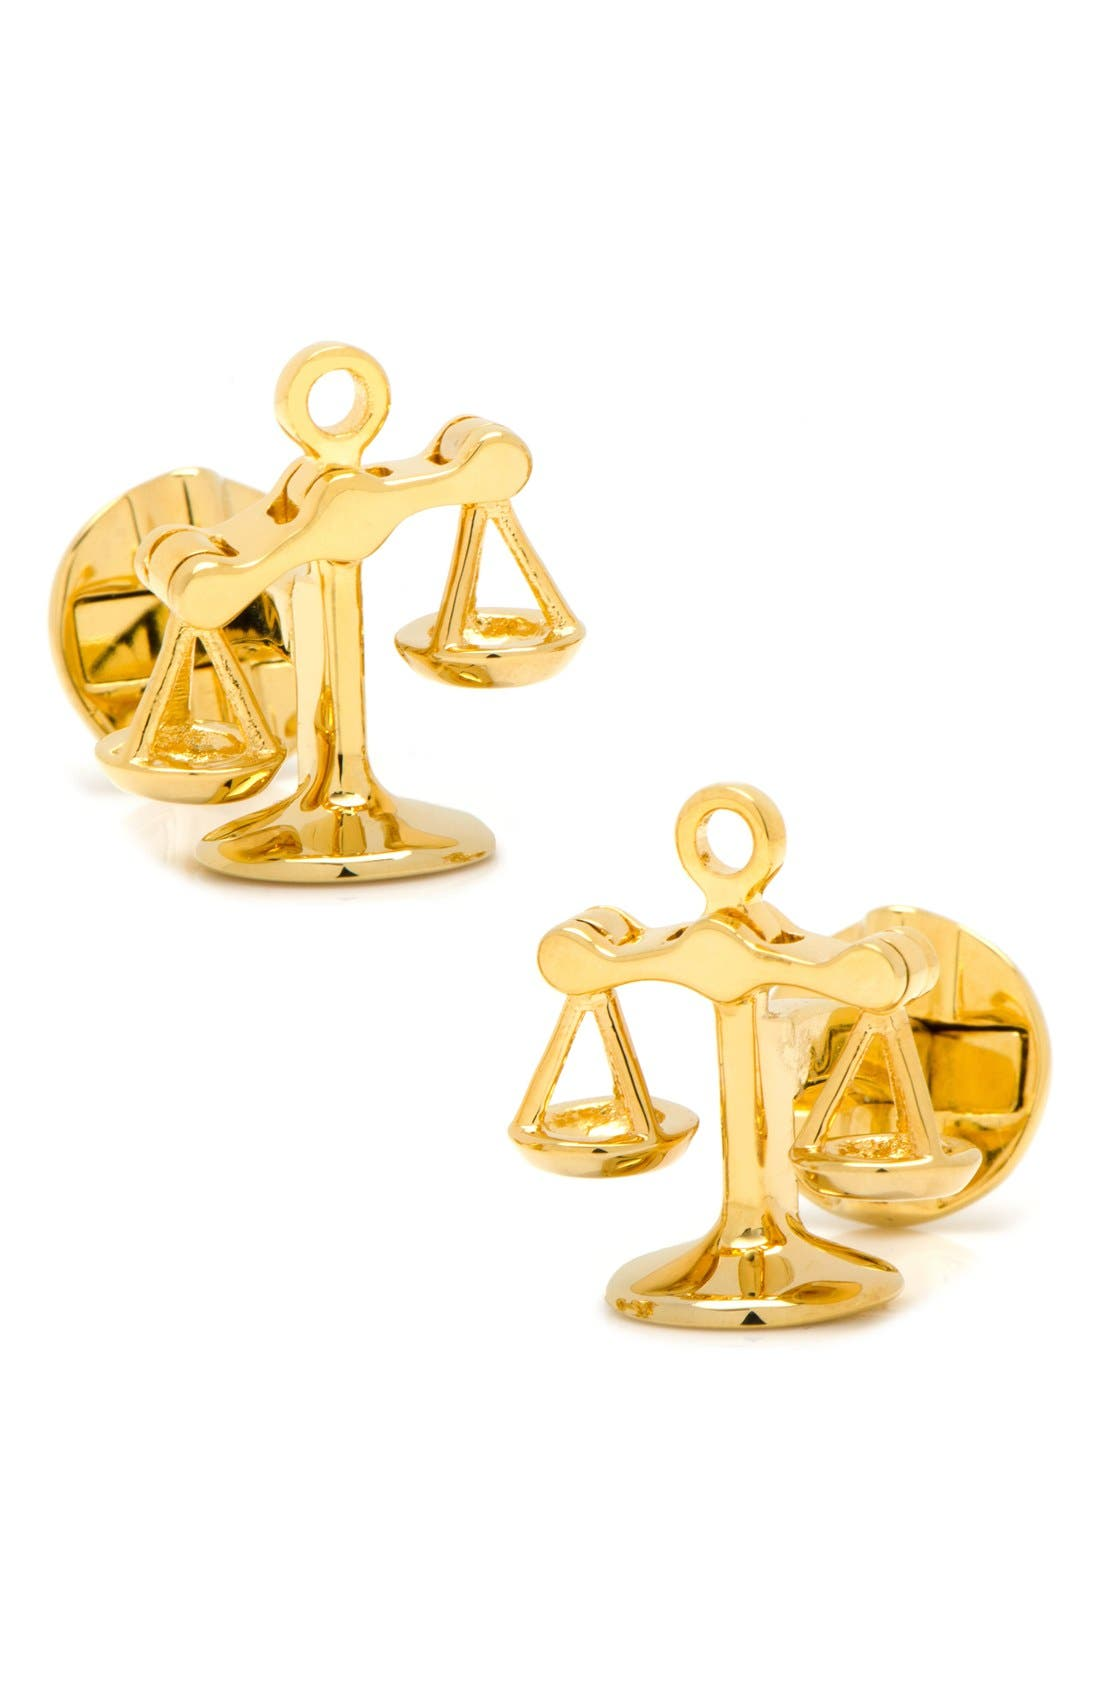 Ox and Bull Trading Co. 'Scales of Justice' Cuff Links